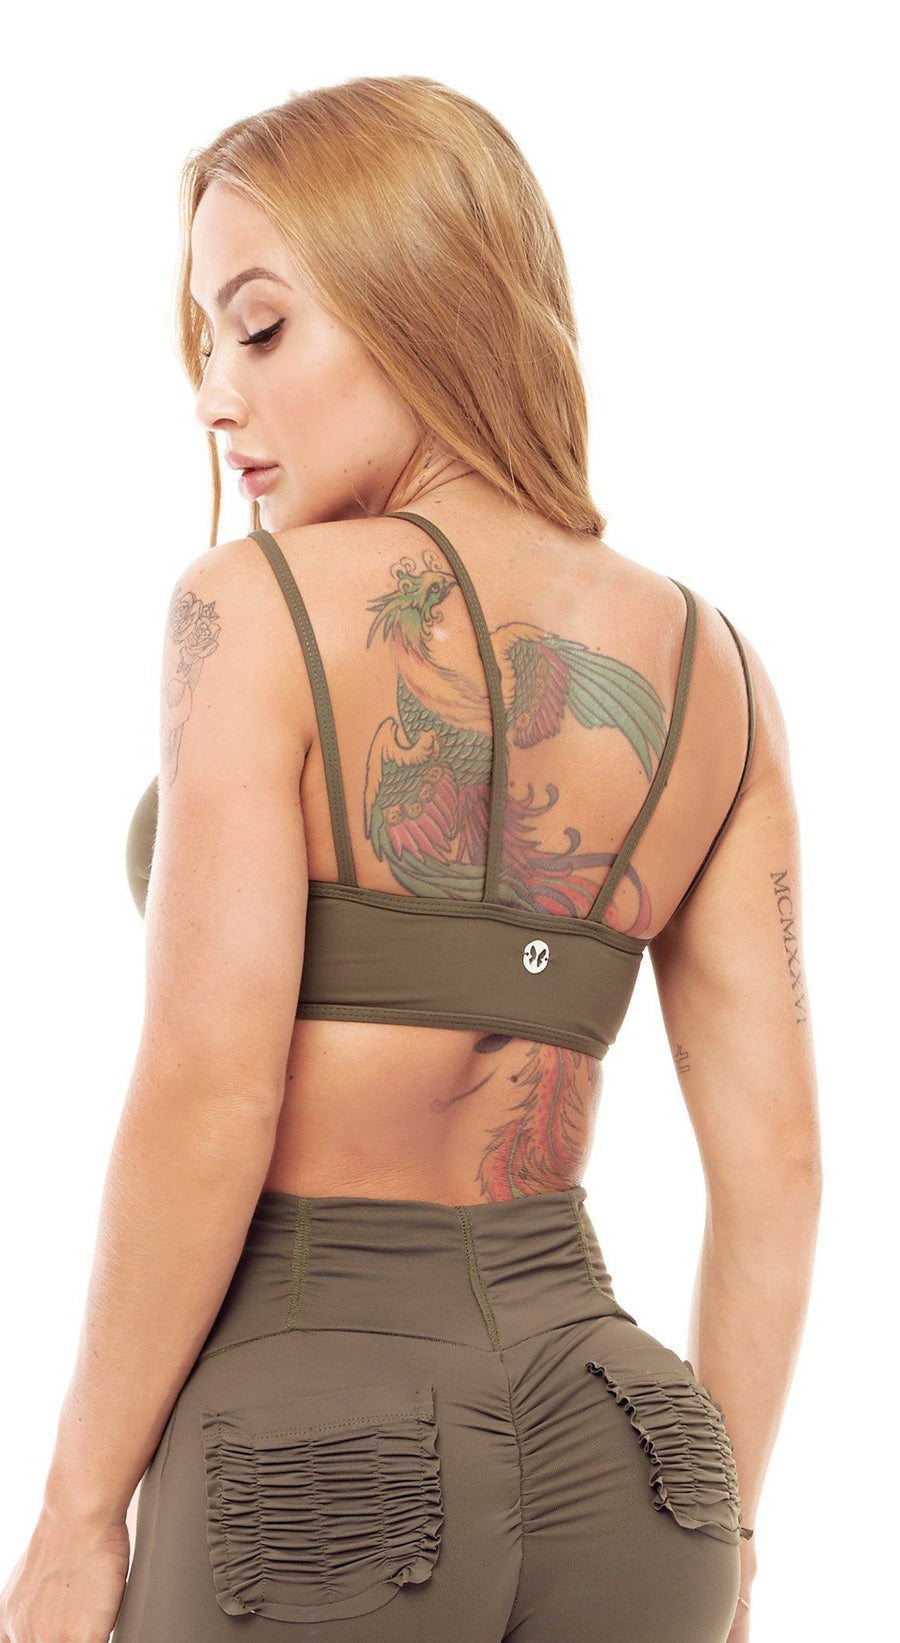 Sports Bra - Top Bra Audacity Army Green